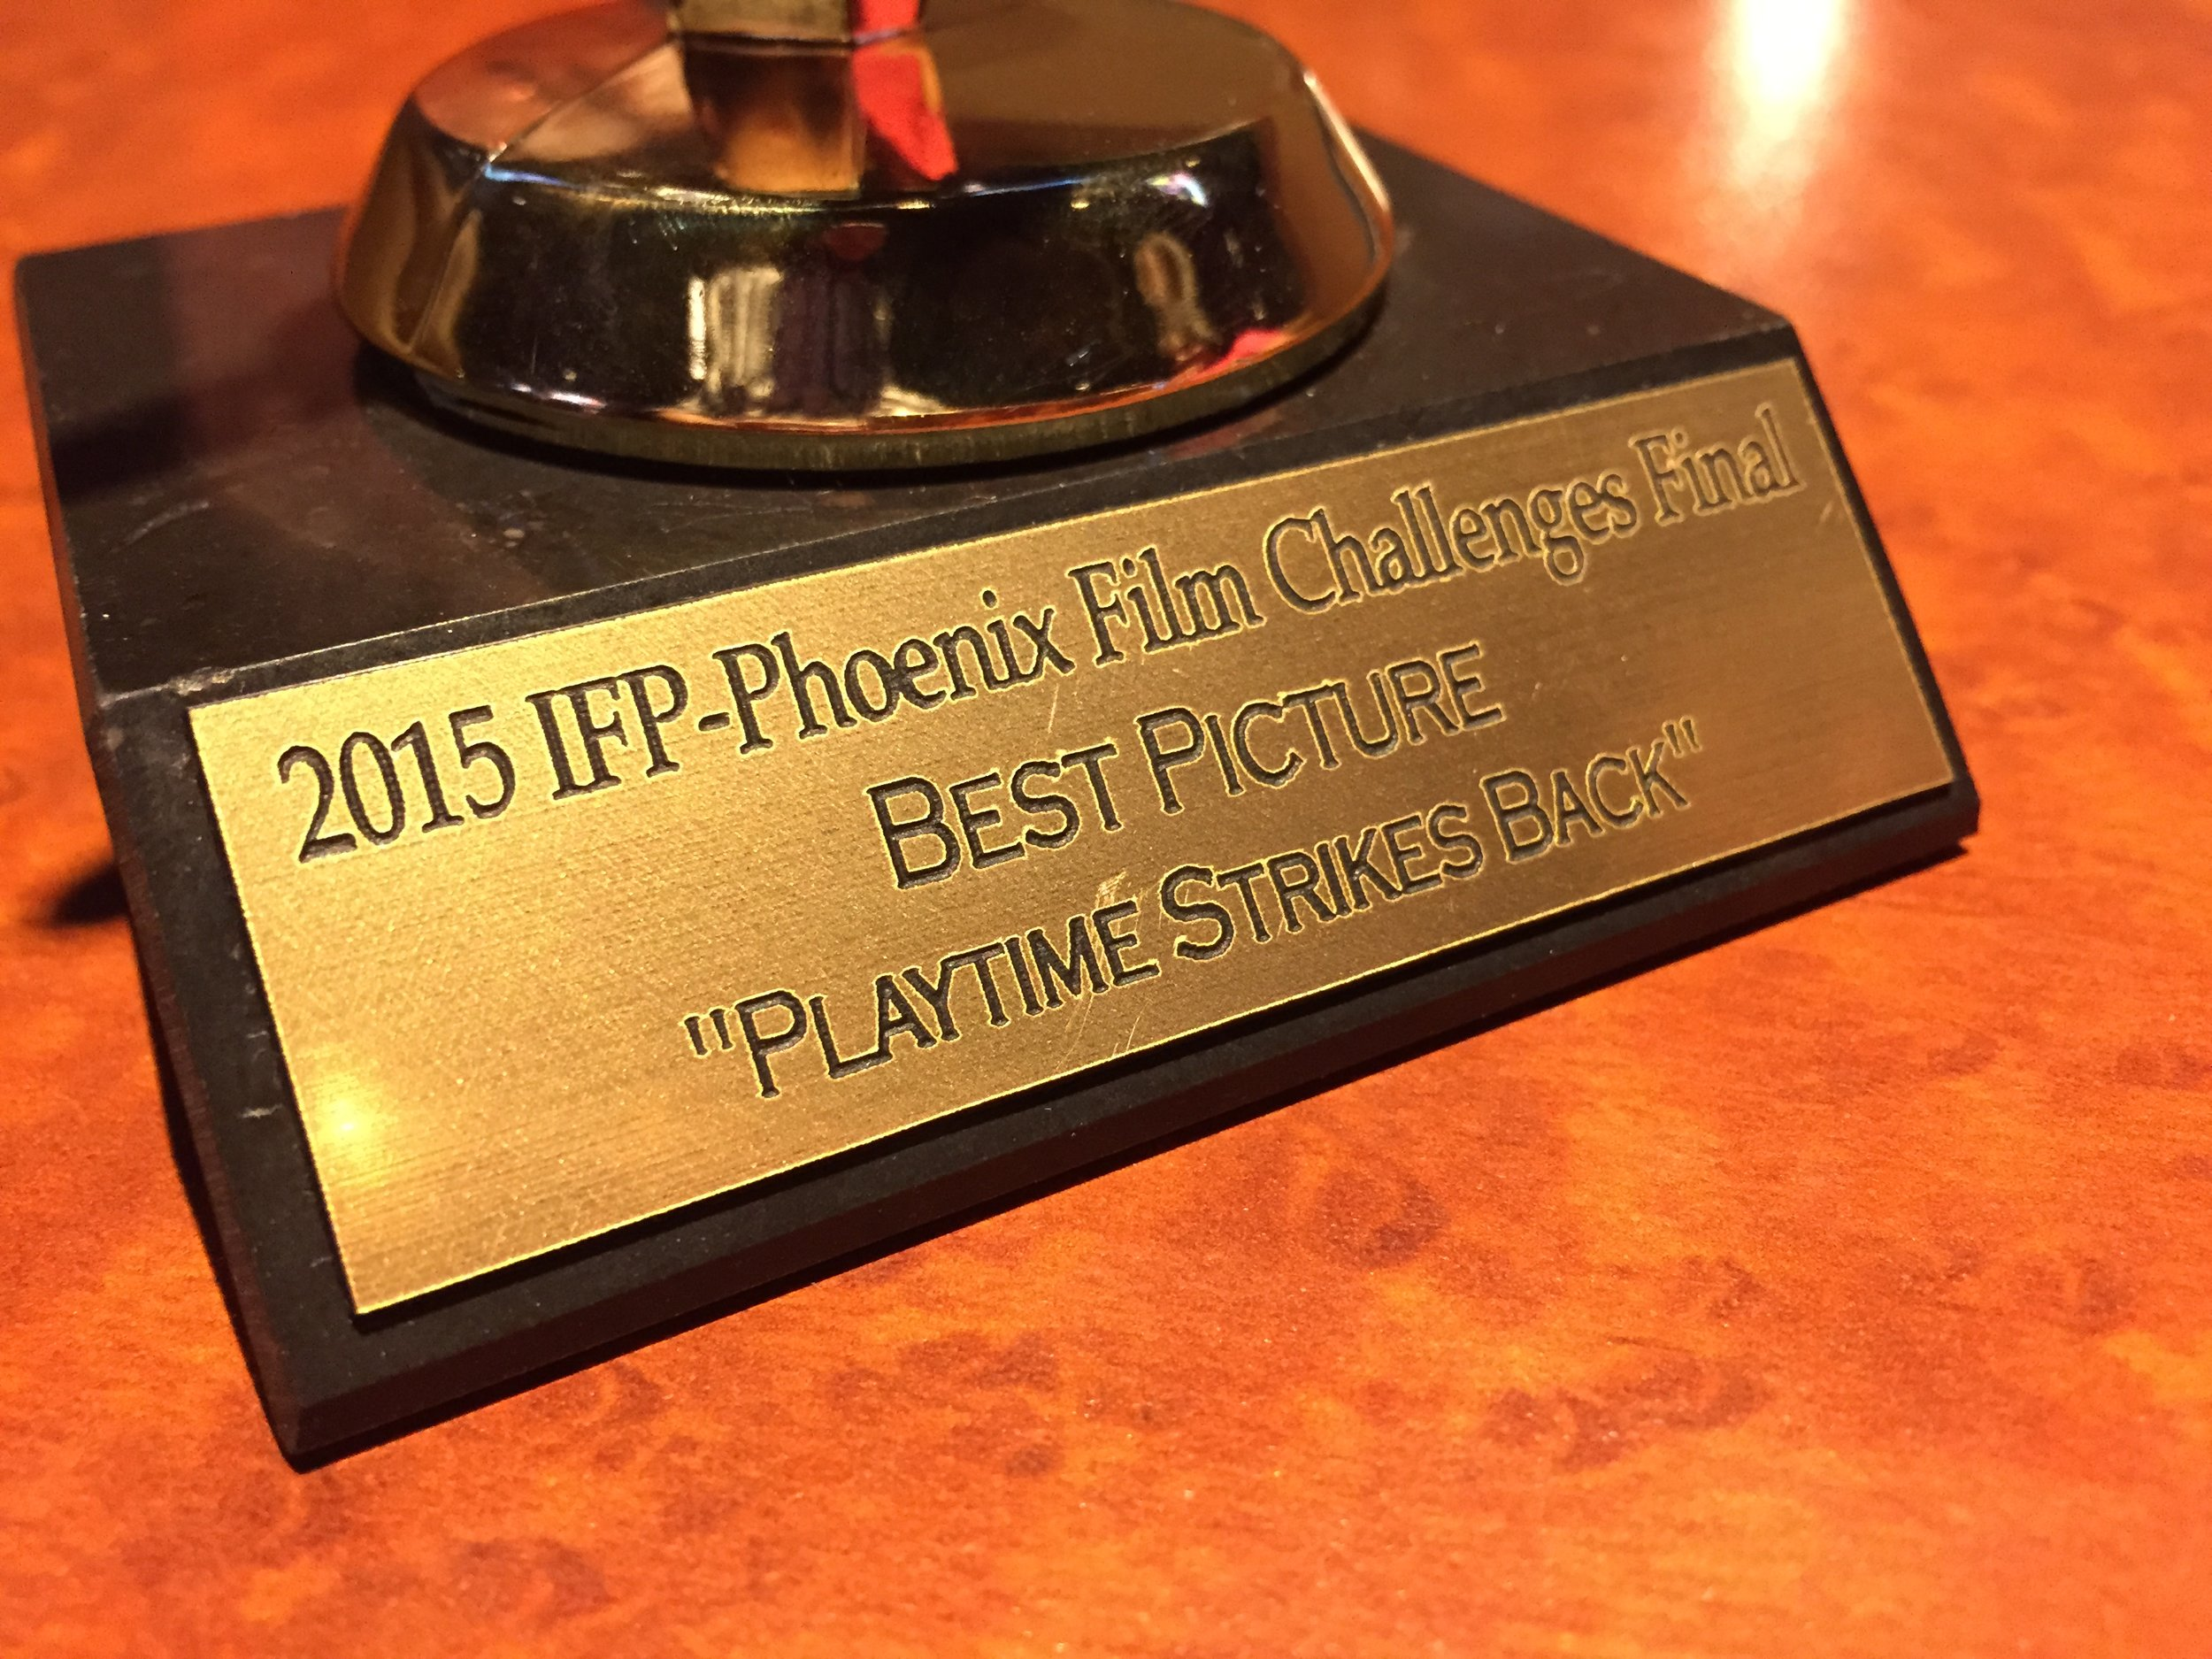 1st Place Best Picture - IFP Film Festival - Audience Award/Best Trailer/Best Use of Theme/3rd Place IFP Challenge